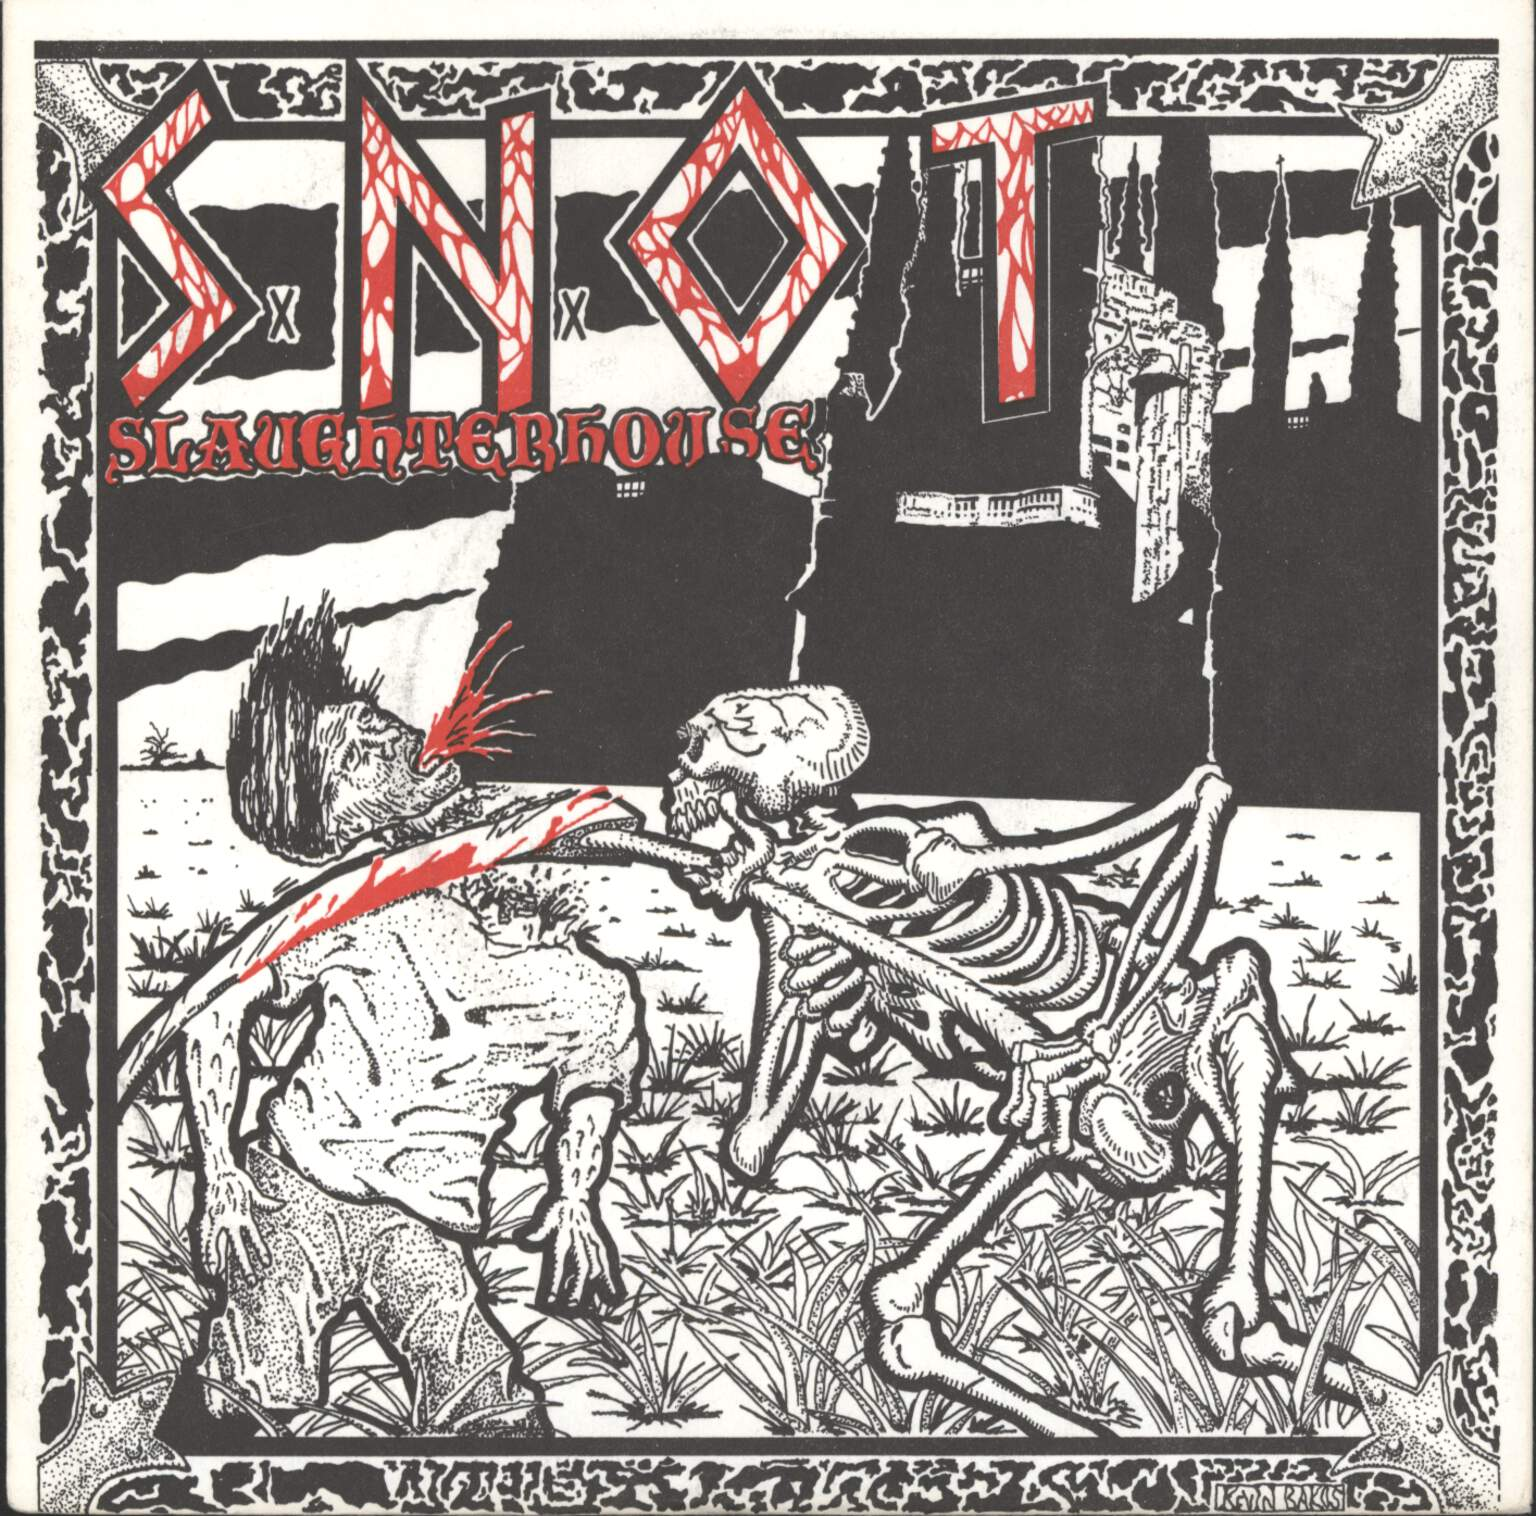 "S.N.O.T.: Slaughterhouse, 7"" Single (Vinyl)"